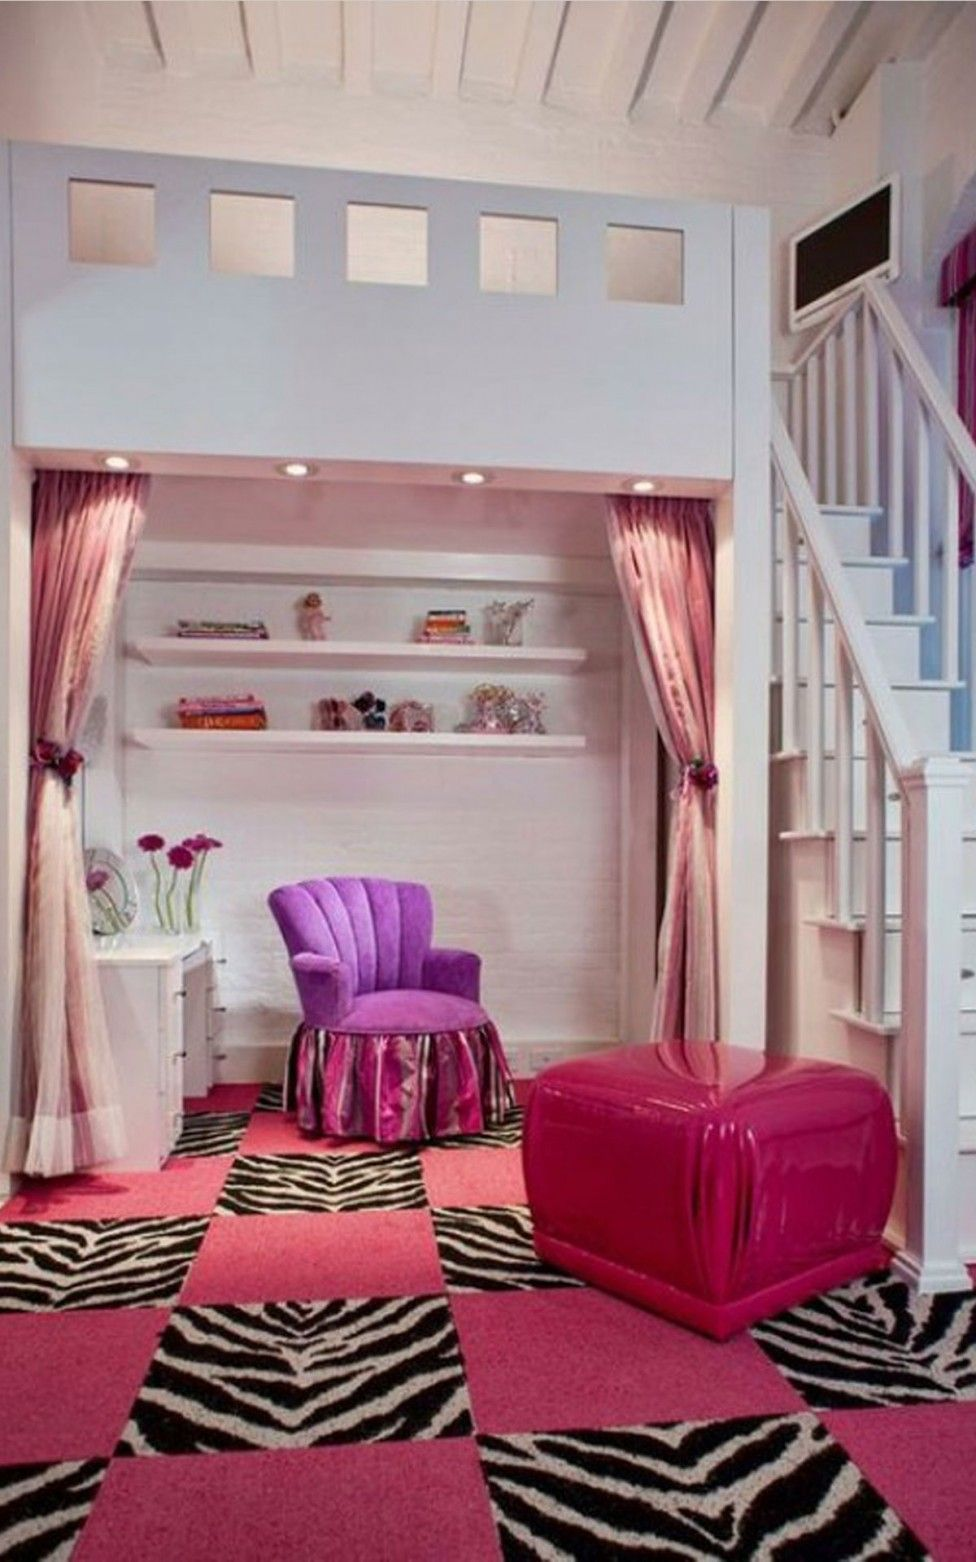 Small room ideas for girls with cute color bedroom 22 for Decorate bedroom ideas for teenage girl